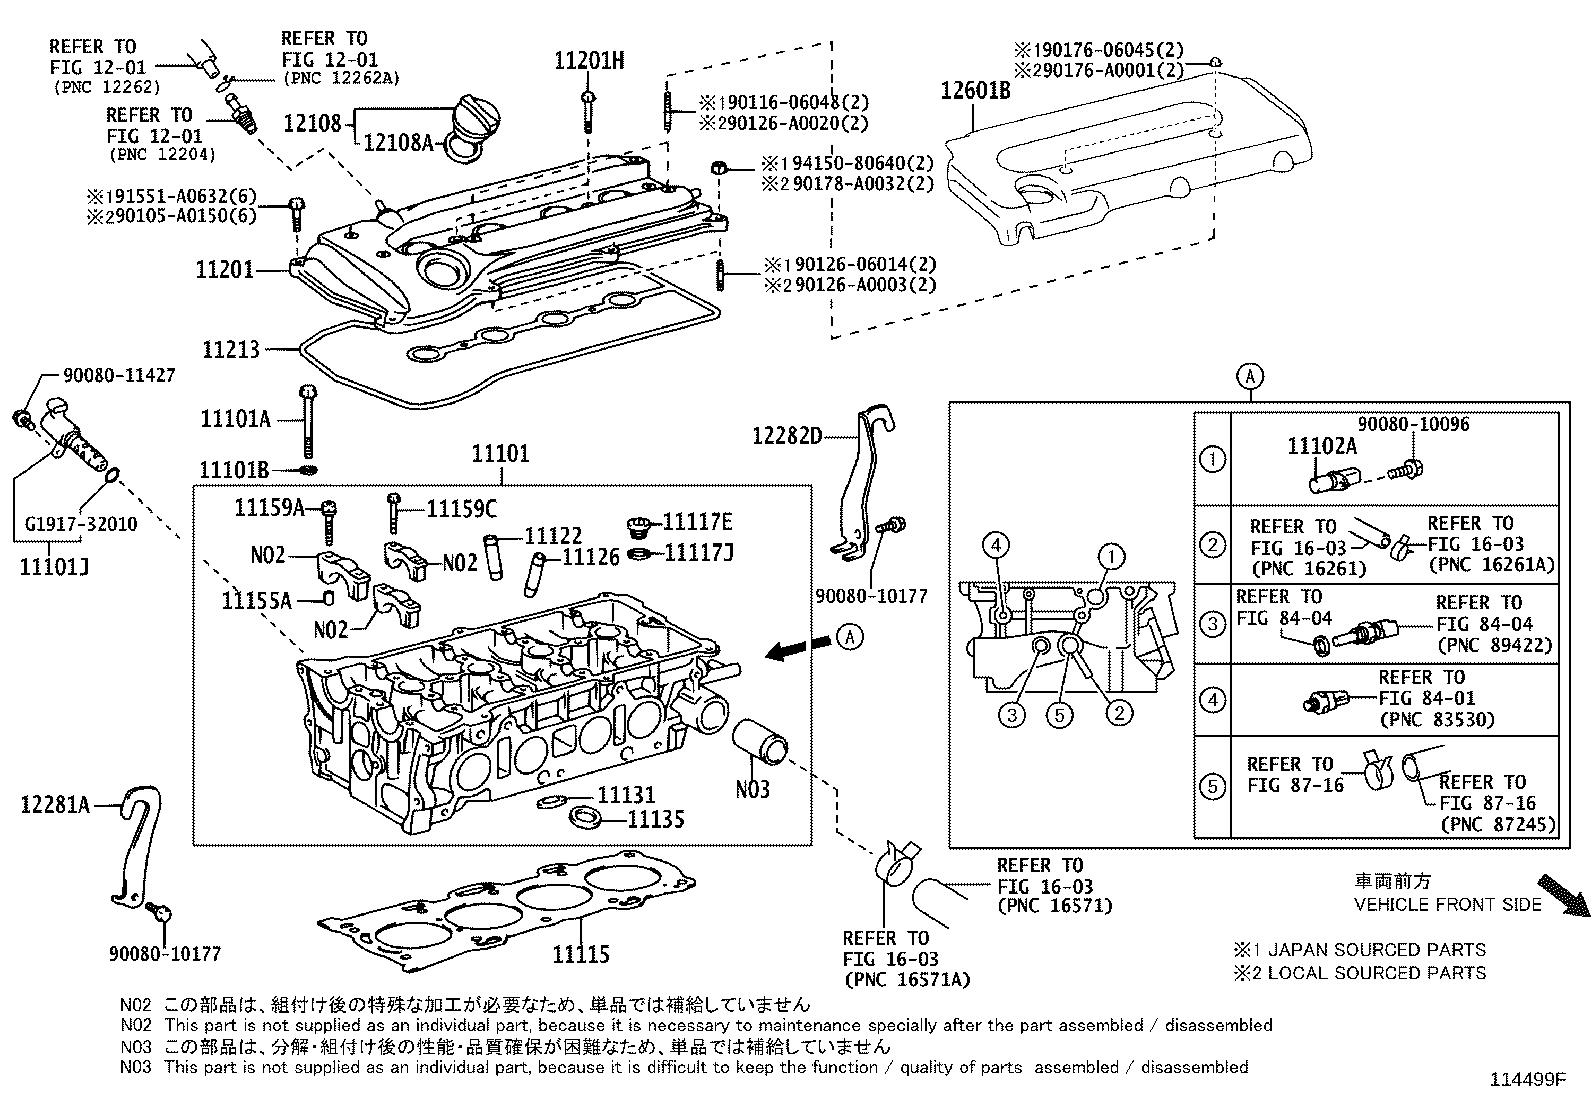 Toyota Camry Engine Valve Cover Cover Cylinder Head